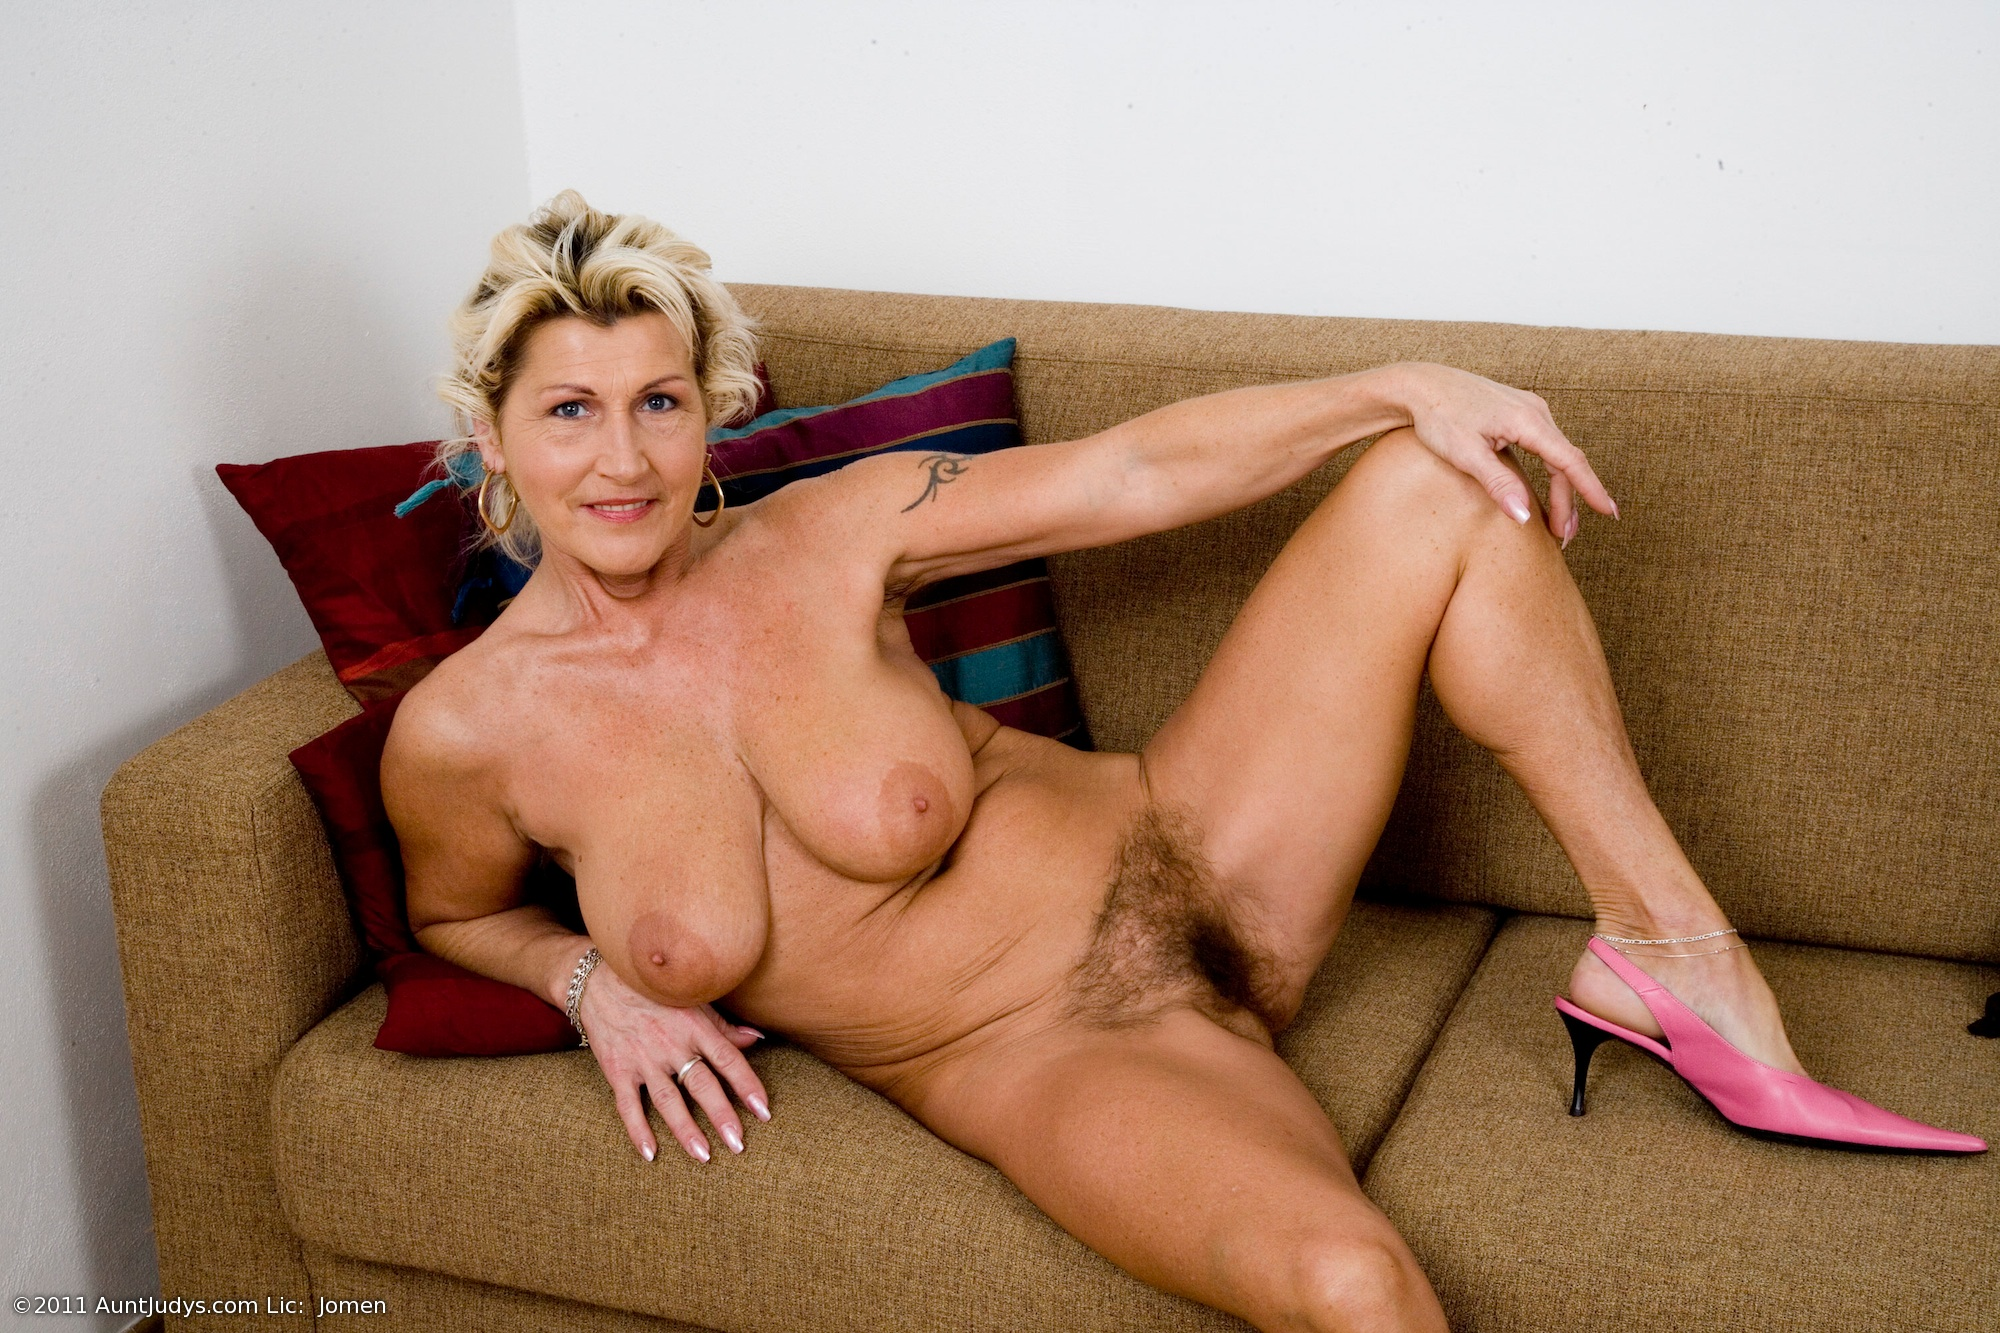 Sexy nude women over 60